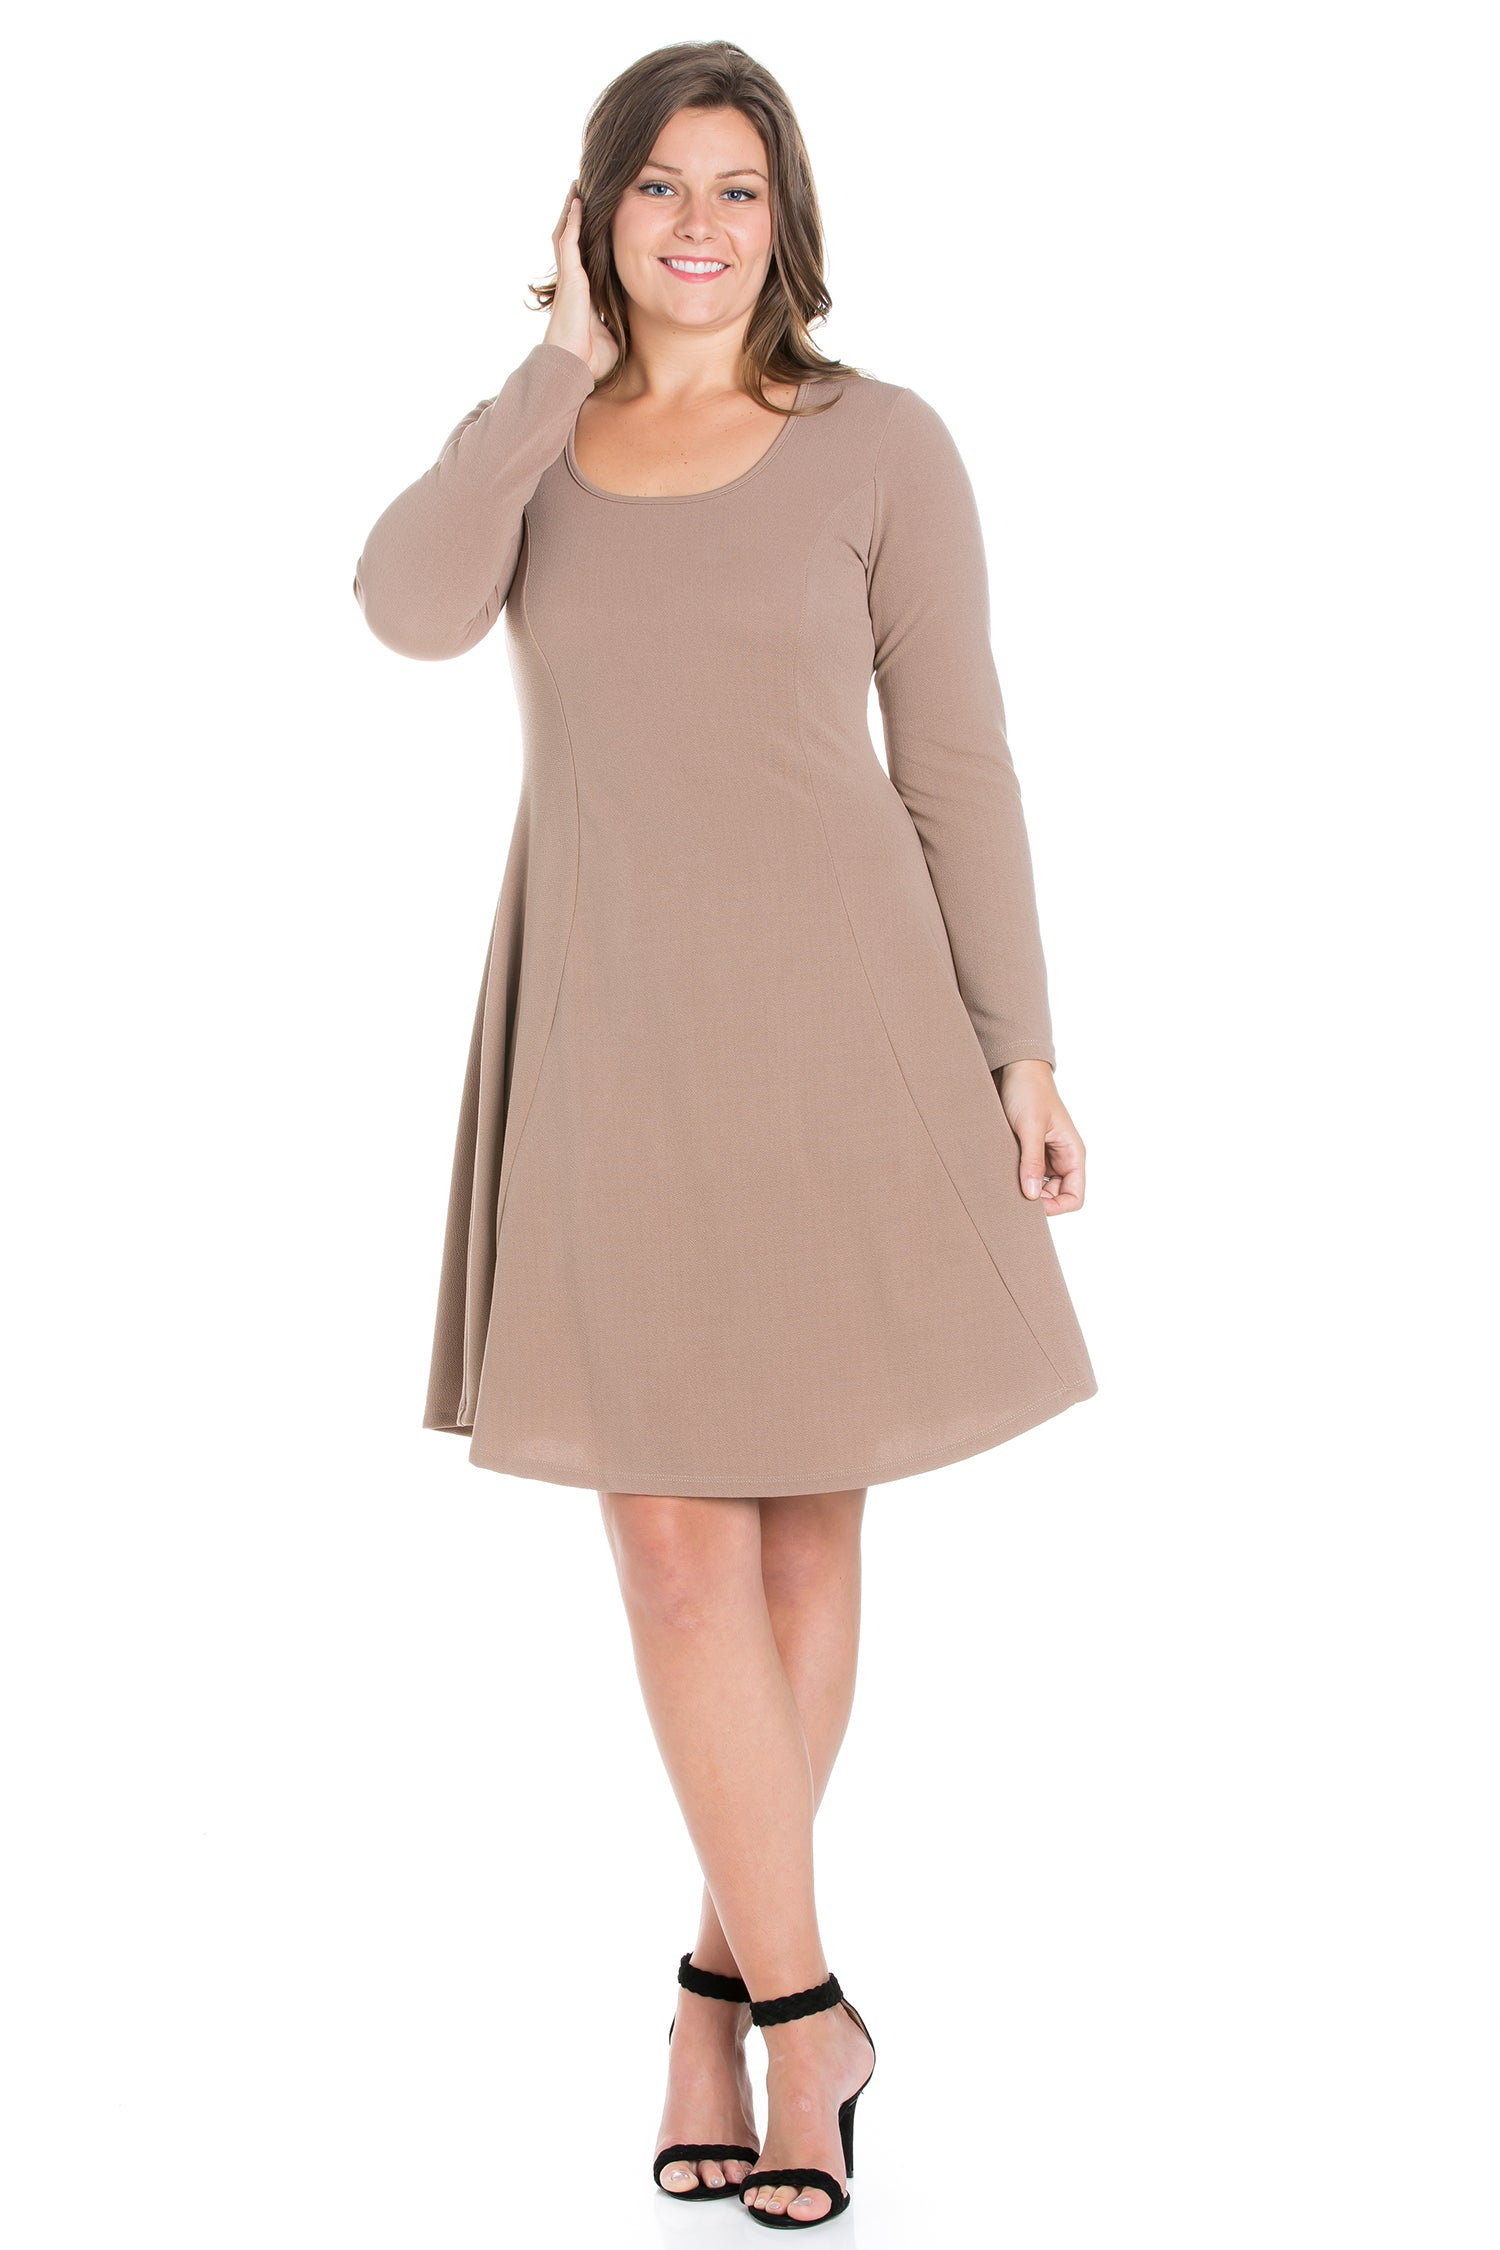 24seven Comfort Apparel Long Sleeve Knee Length Plus Size Skater Dress-DRESSES-24Seven Comfort Apparel-TAUPE-1X-24/7 Comfort Apparel